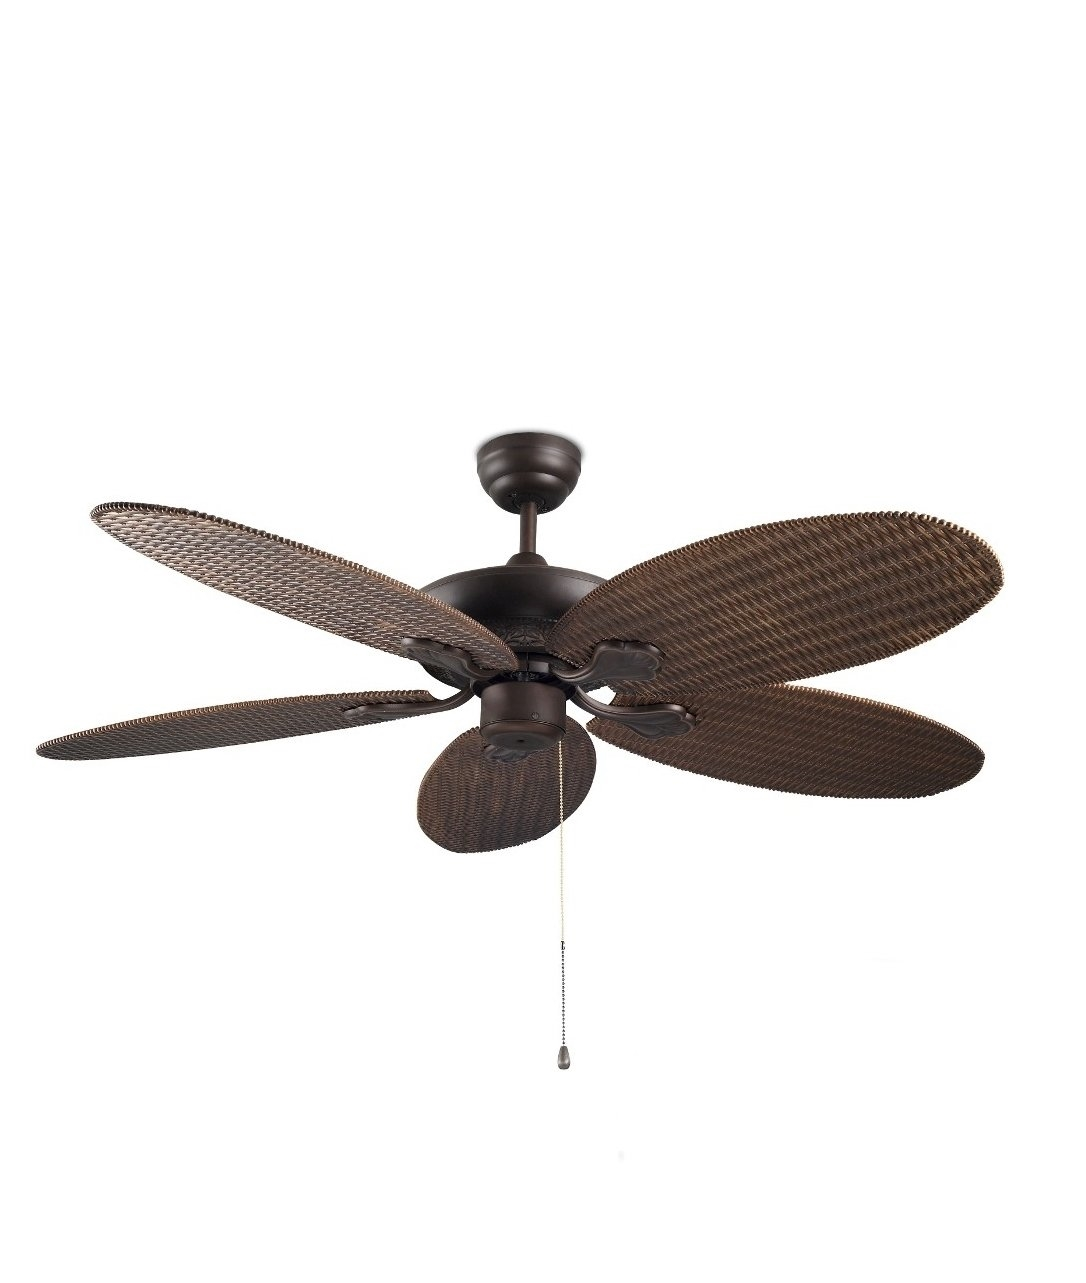 Rattan style ceiling fan with pull cords and no light feature Ceiling fans no light